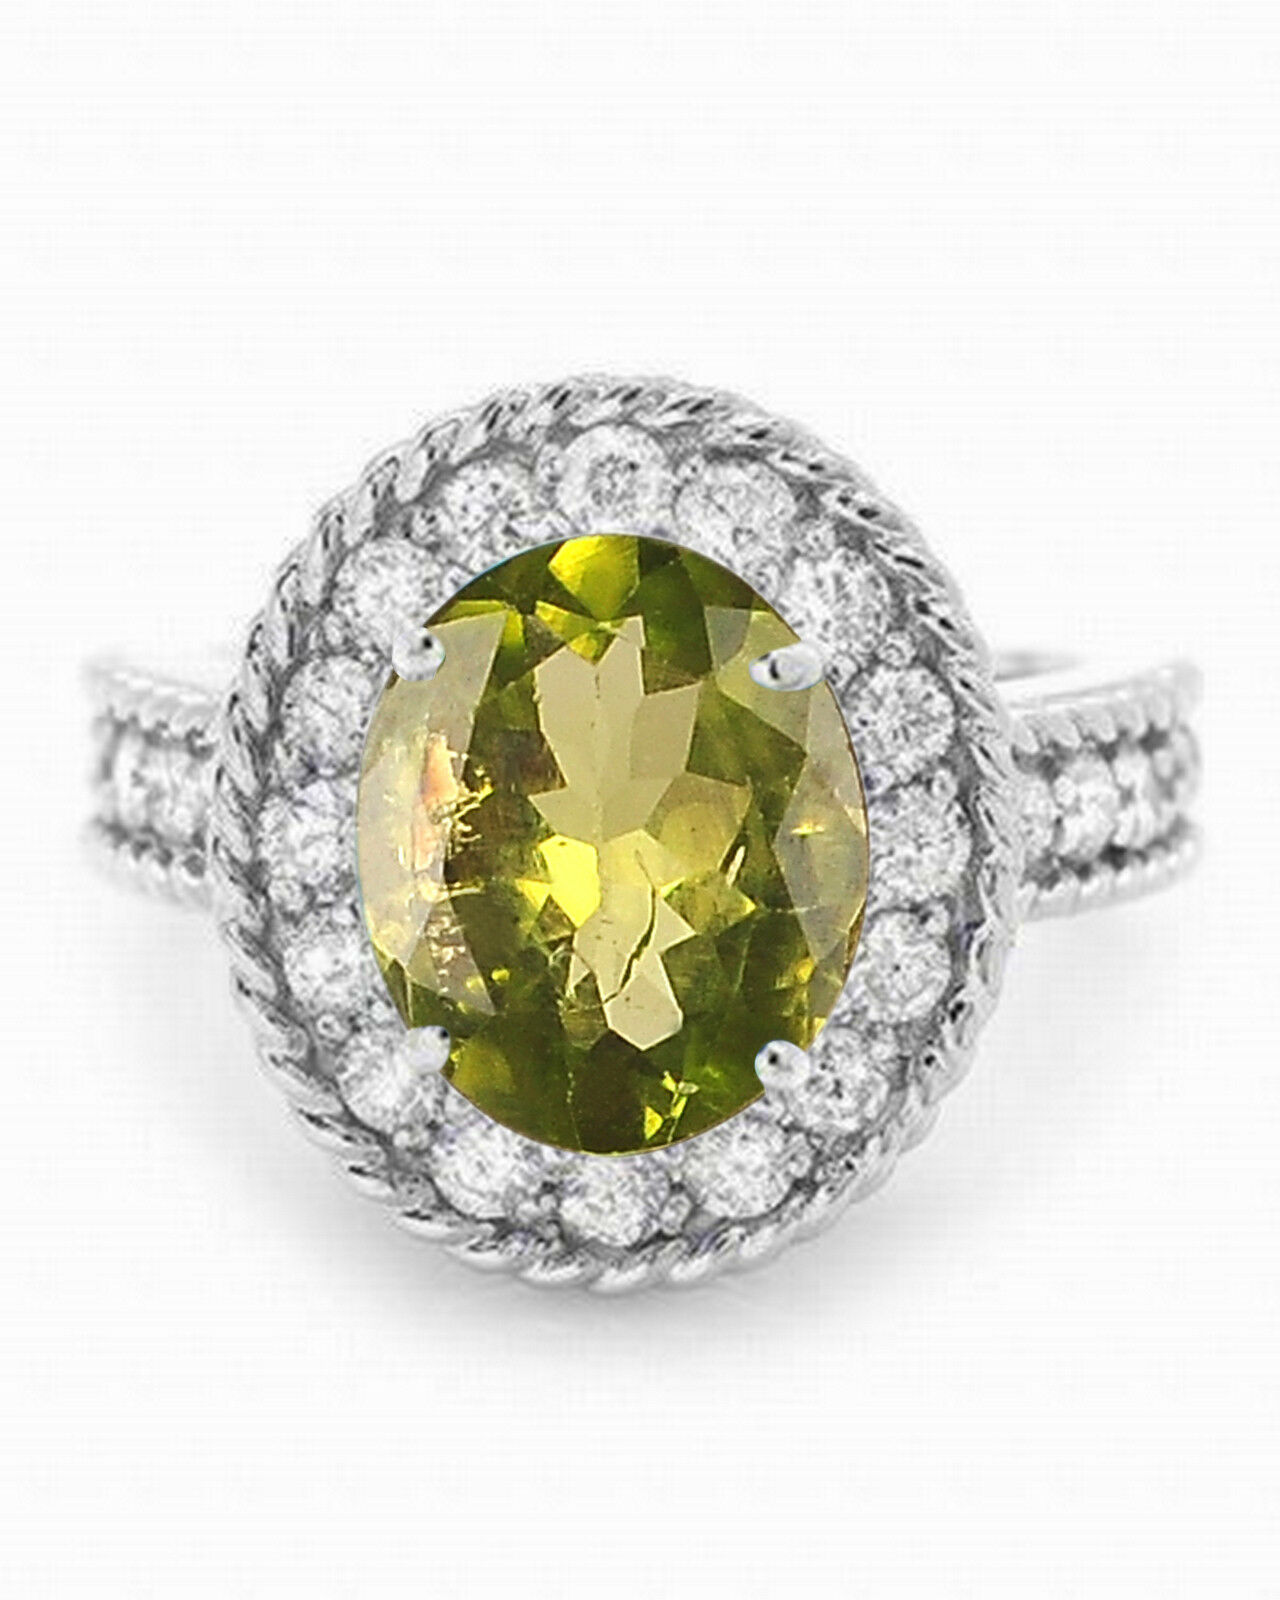 14KT White gold Natural Olive-Green Peridot 2.20Ct EGL Certified Diamond Ring